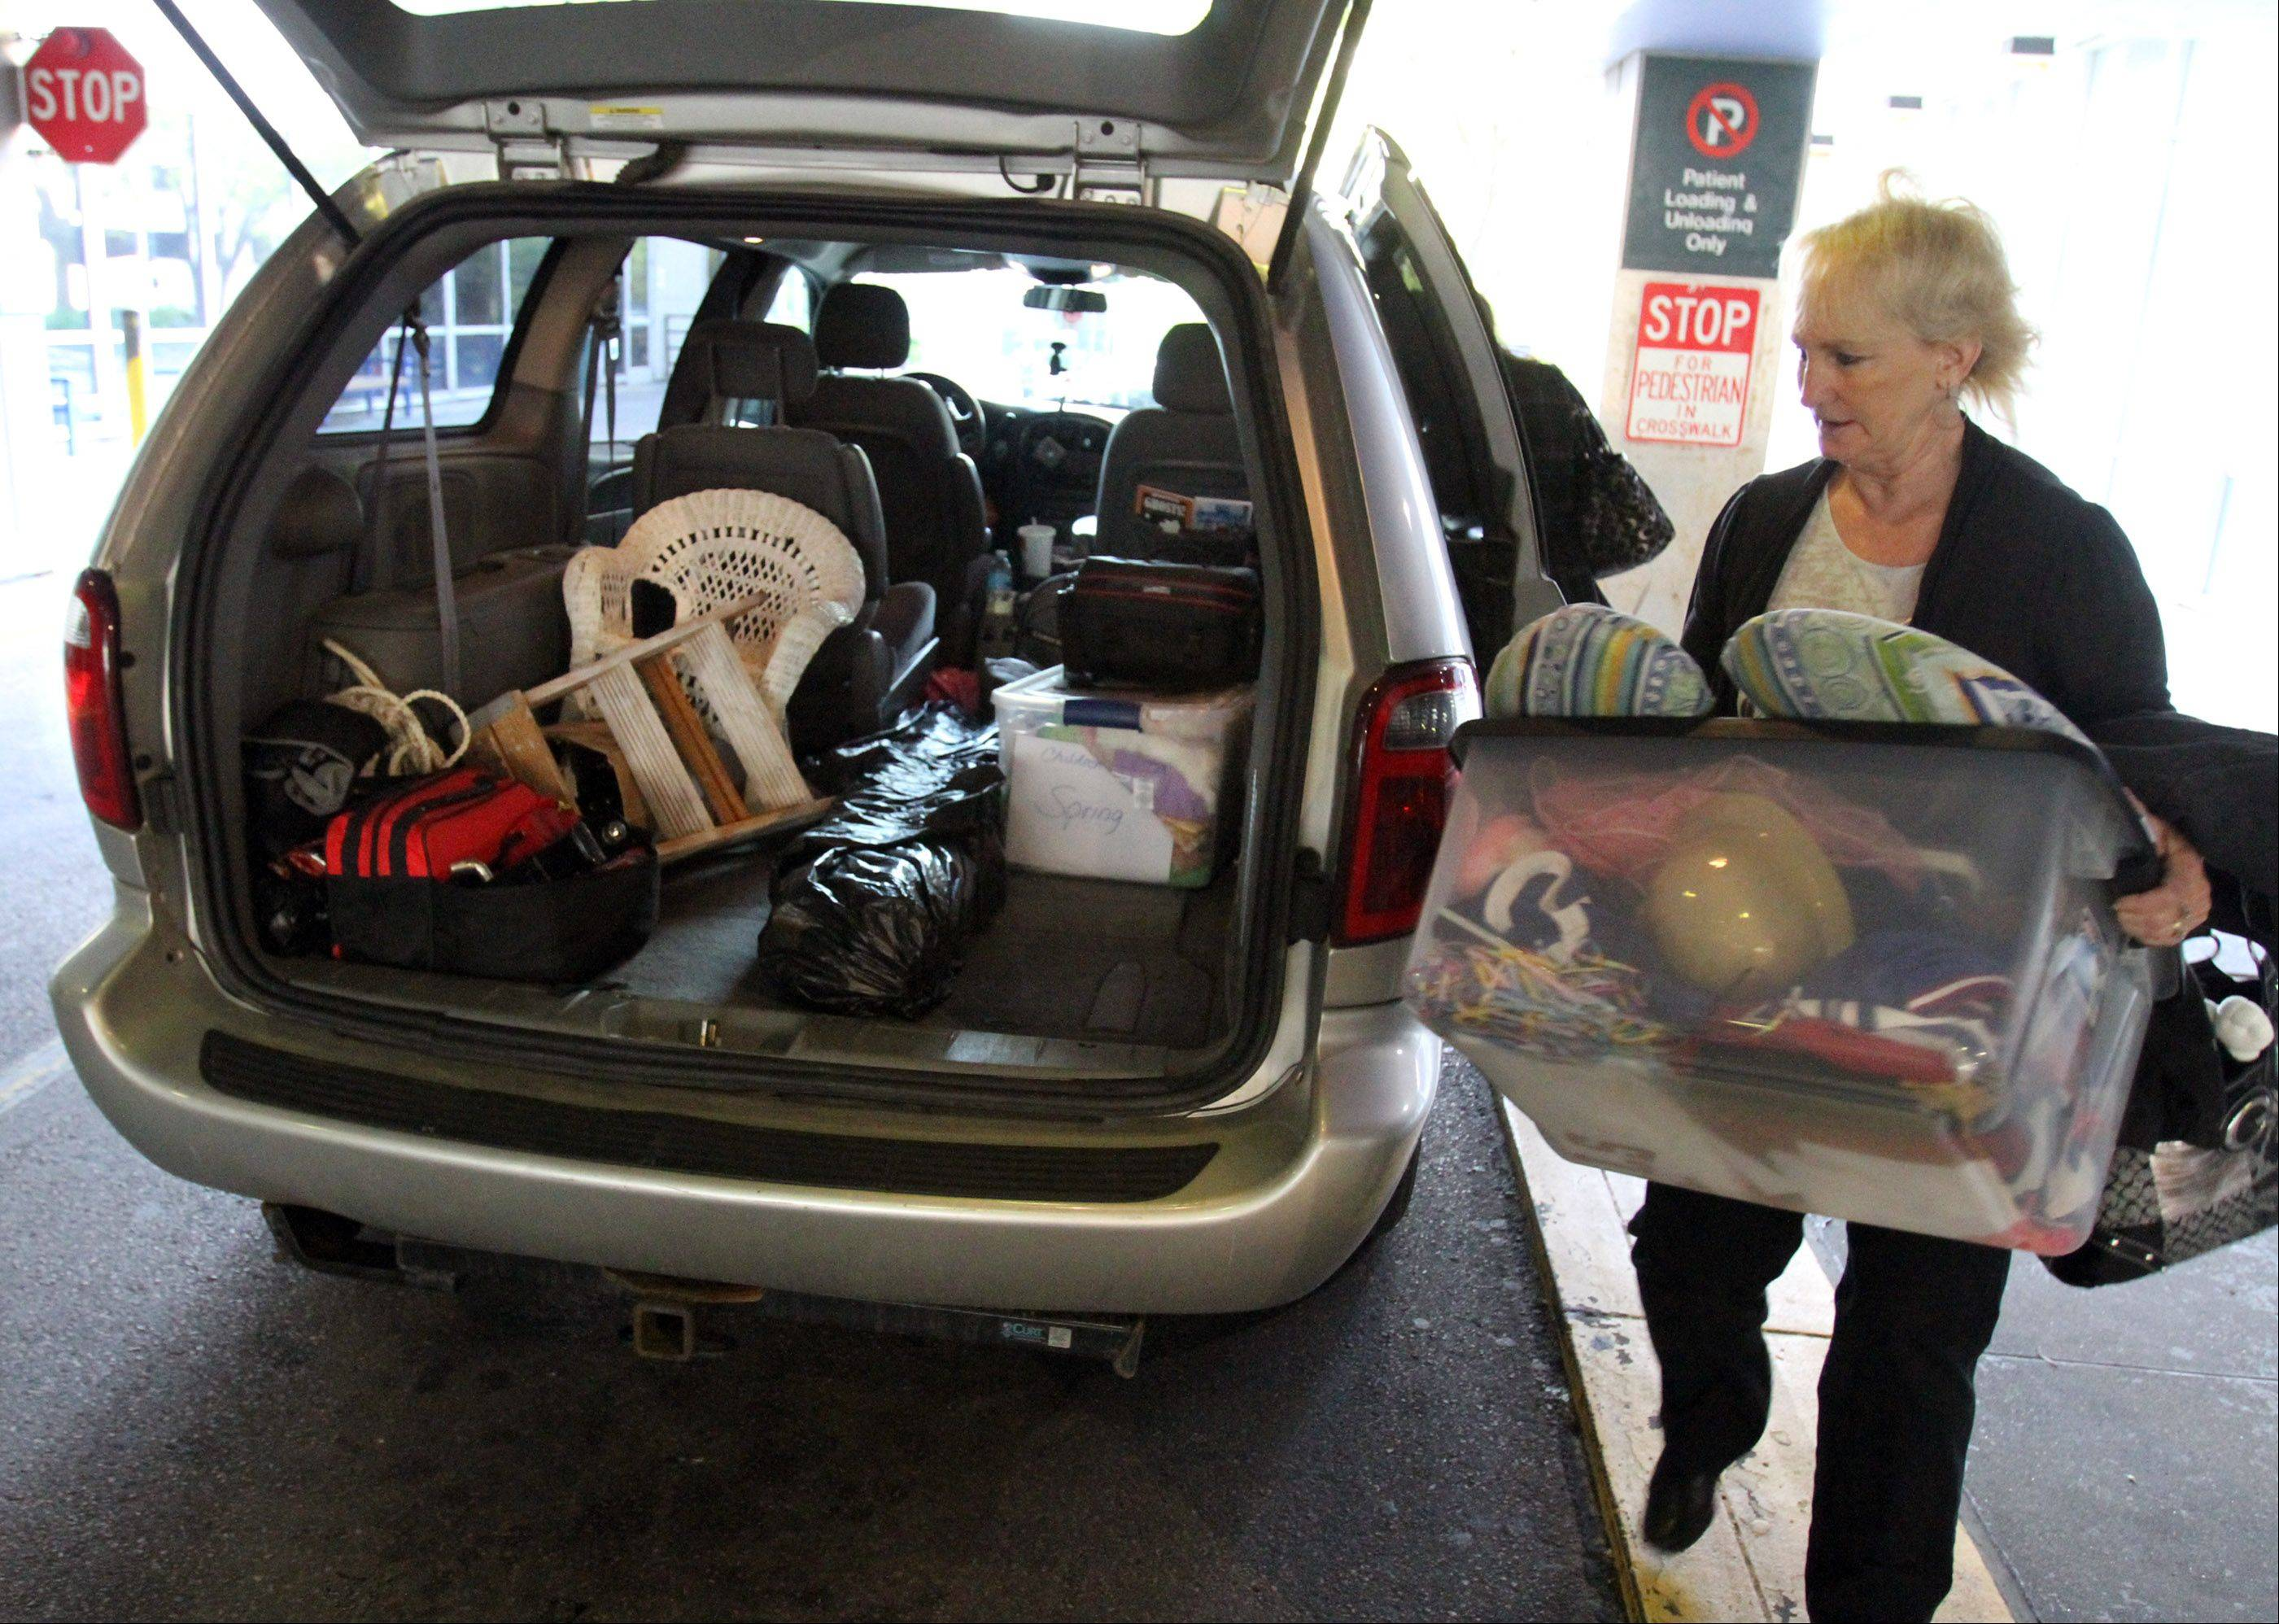 Sharon Weigand unloads a carton of costumes and hats for a photo session at Children's Memorial Hospital.